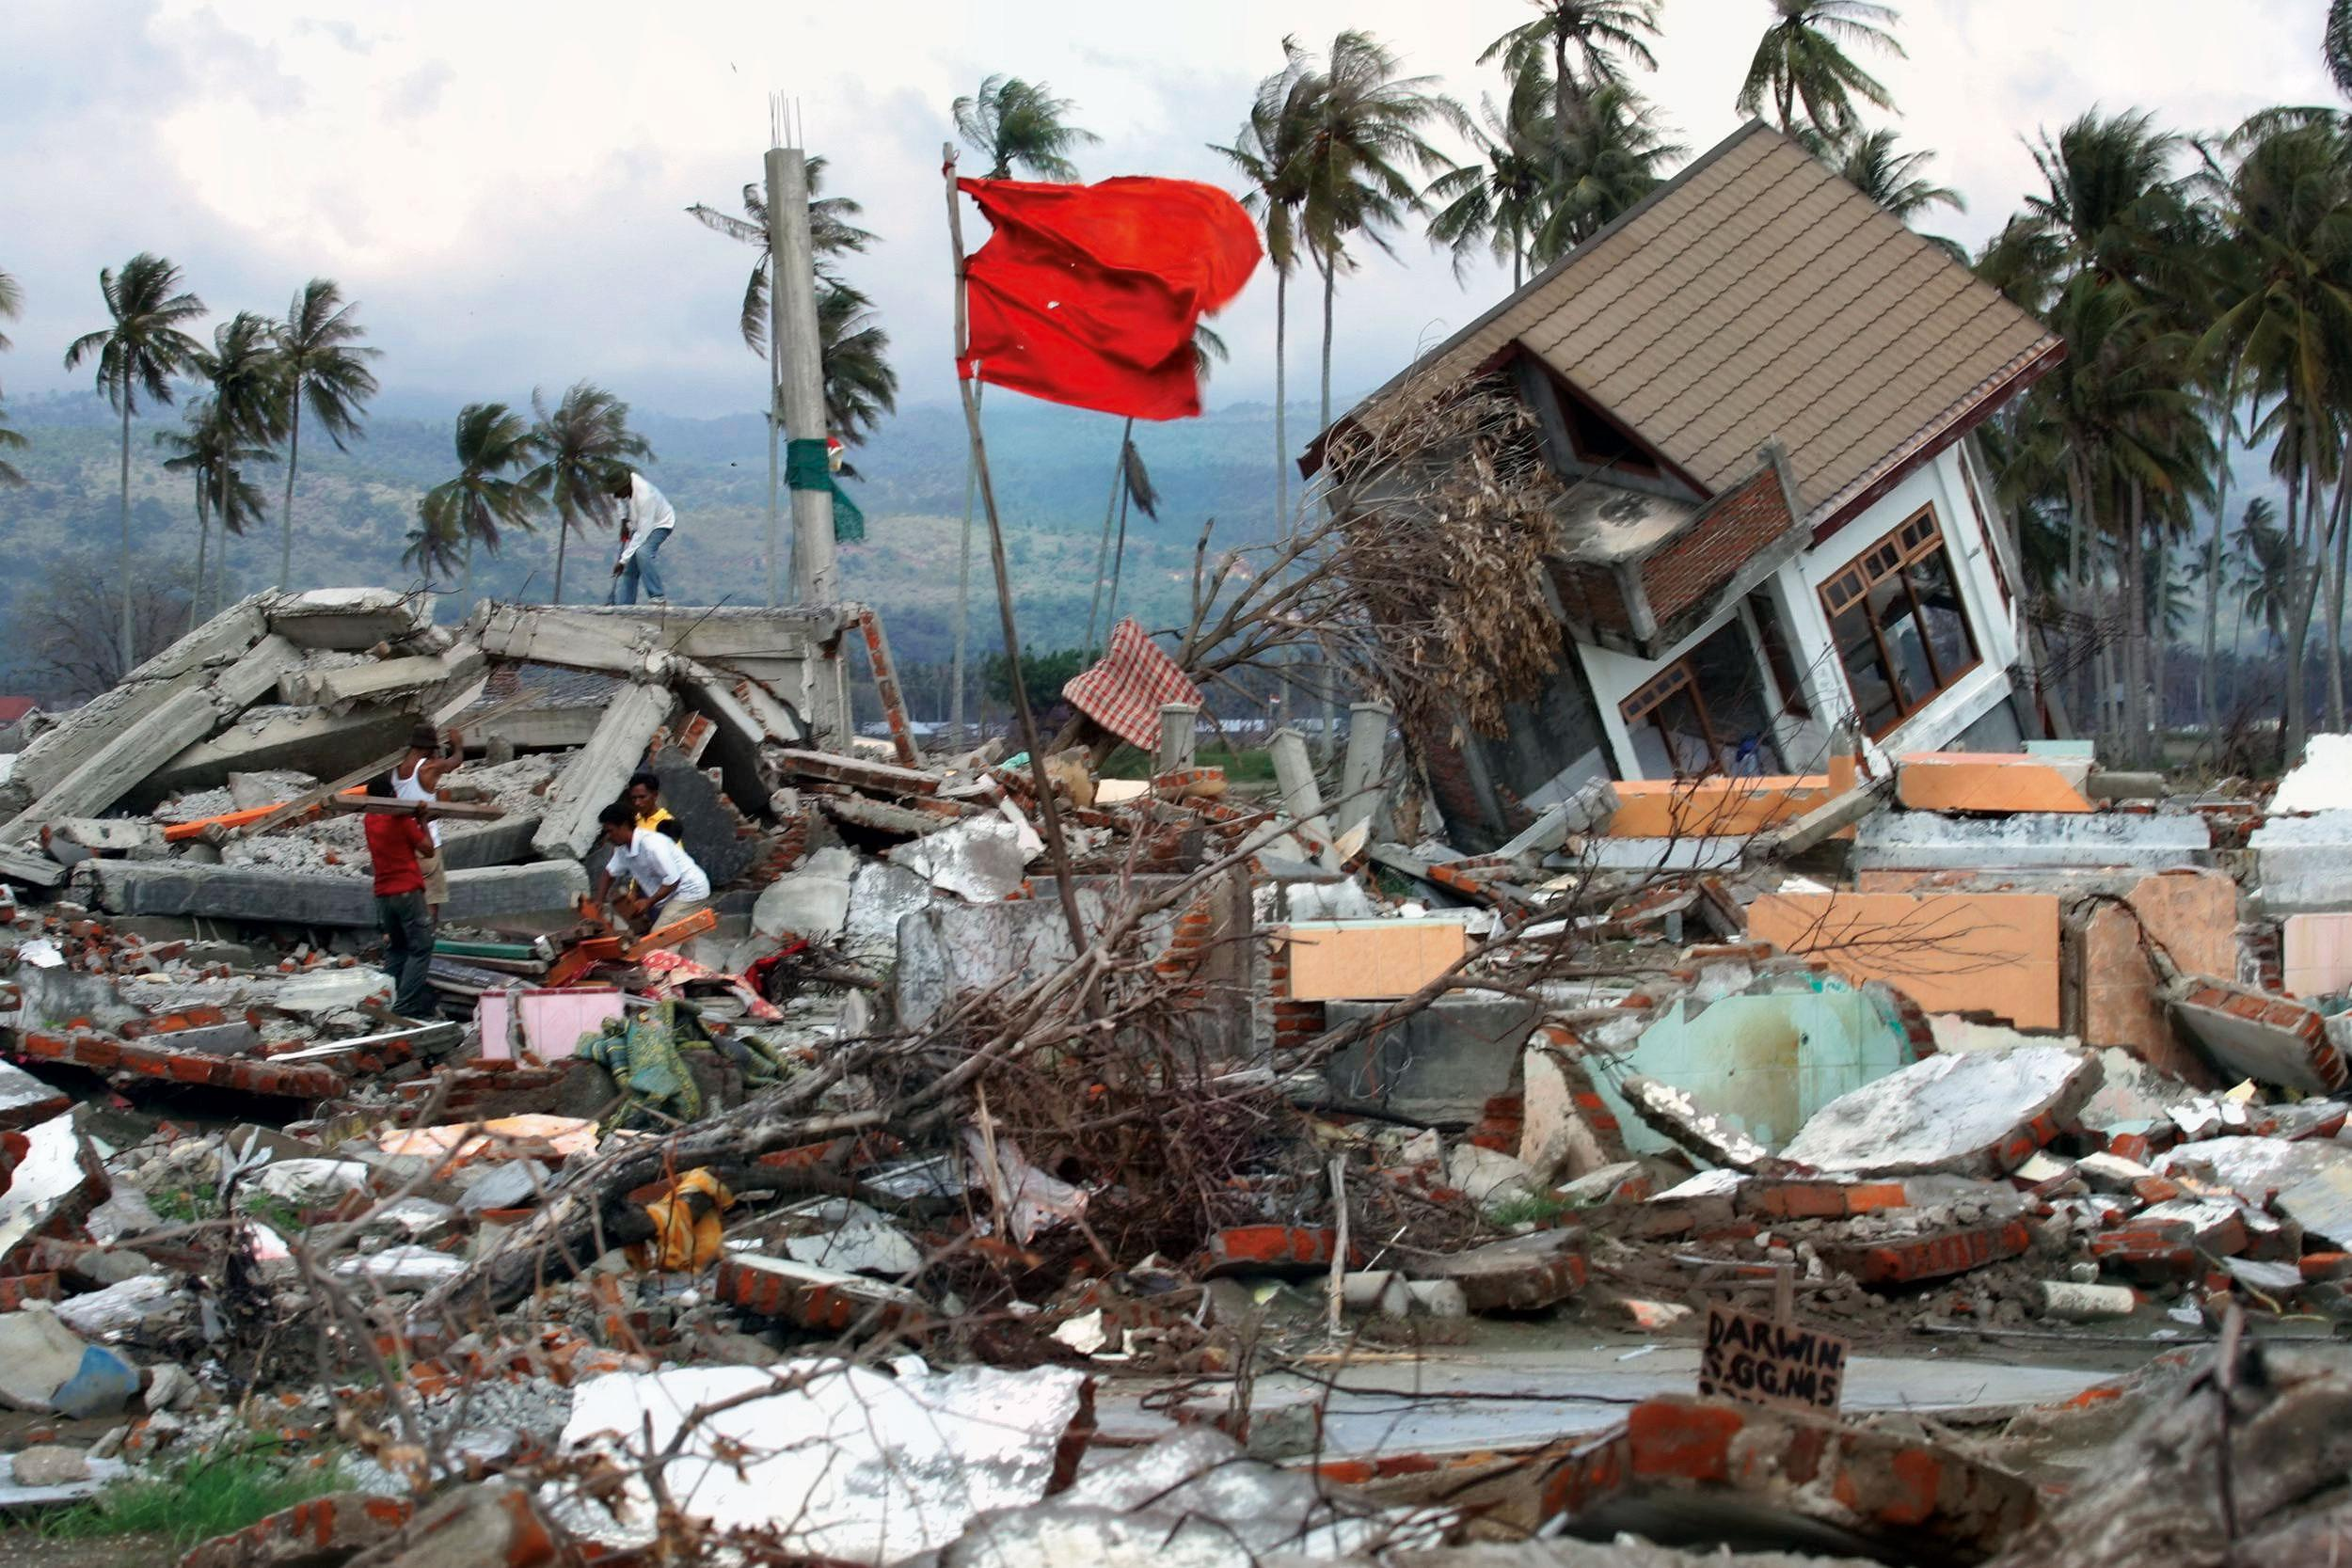 sumatra tsunami disaster essay The 2010 mentawai earthquake occurred with a moment magnitude of 78 on 25 october off the western coast of sumatra at 21:42 local time (14:42 utc) the earthquake occurred on the same fault that produced the 2004 indian ocean earthquake.